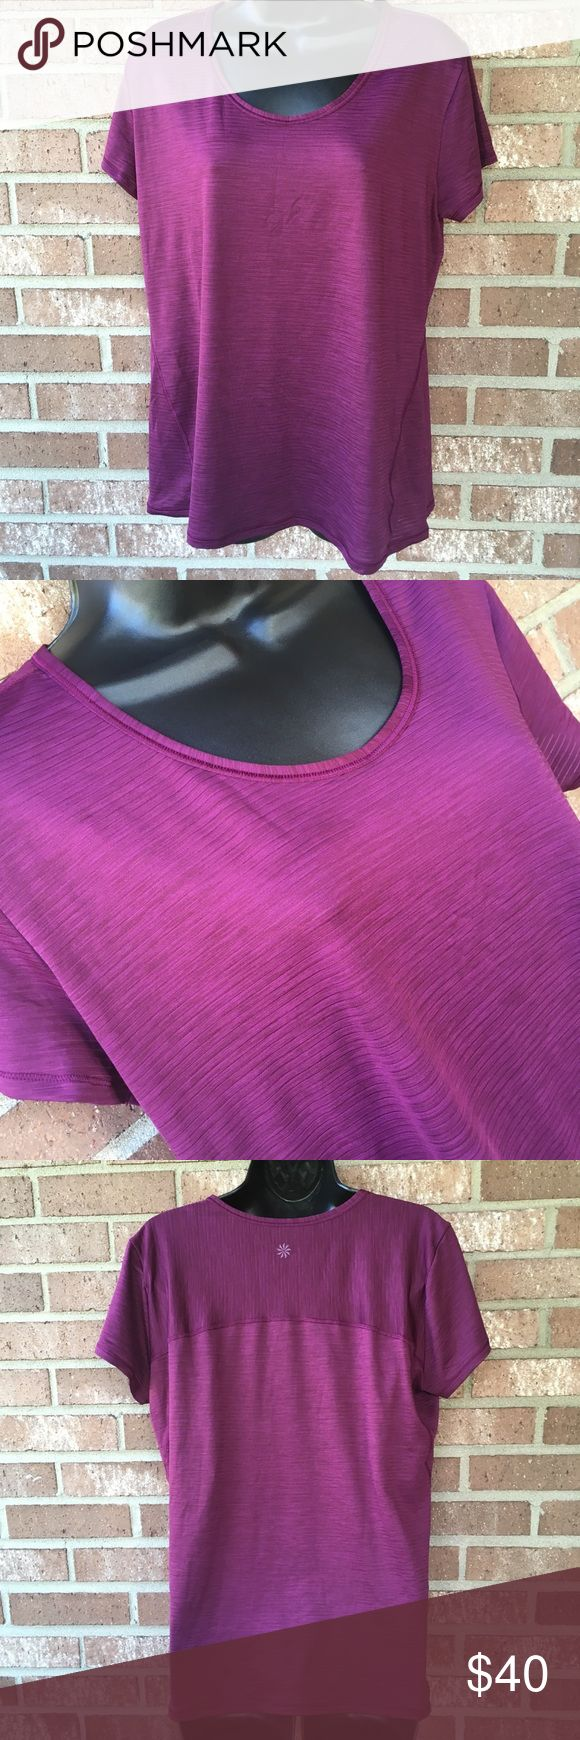 Athleta Purple Short Sleeve Athletic Top Size XL Athleta Athletic Short Sleeve top! Size XL Good used condition overall! Polyester/Spandex blend A cute shade of purple! Perfect colour for the fall! Athleta Tops